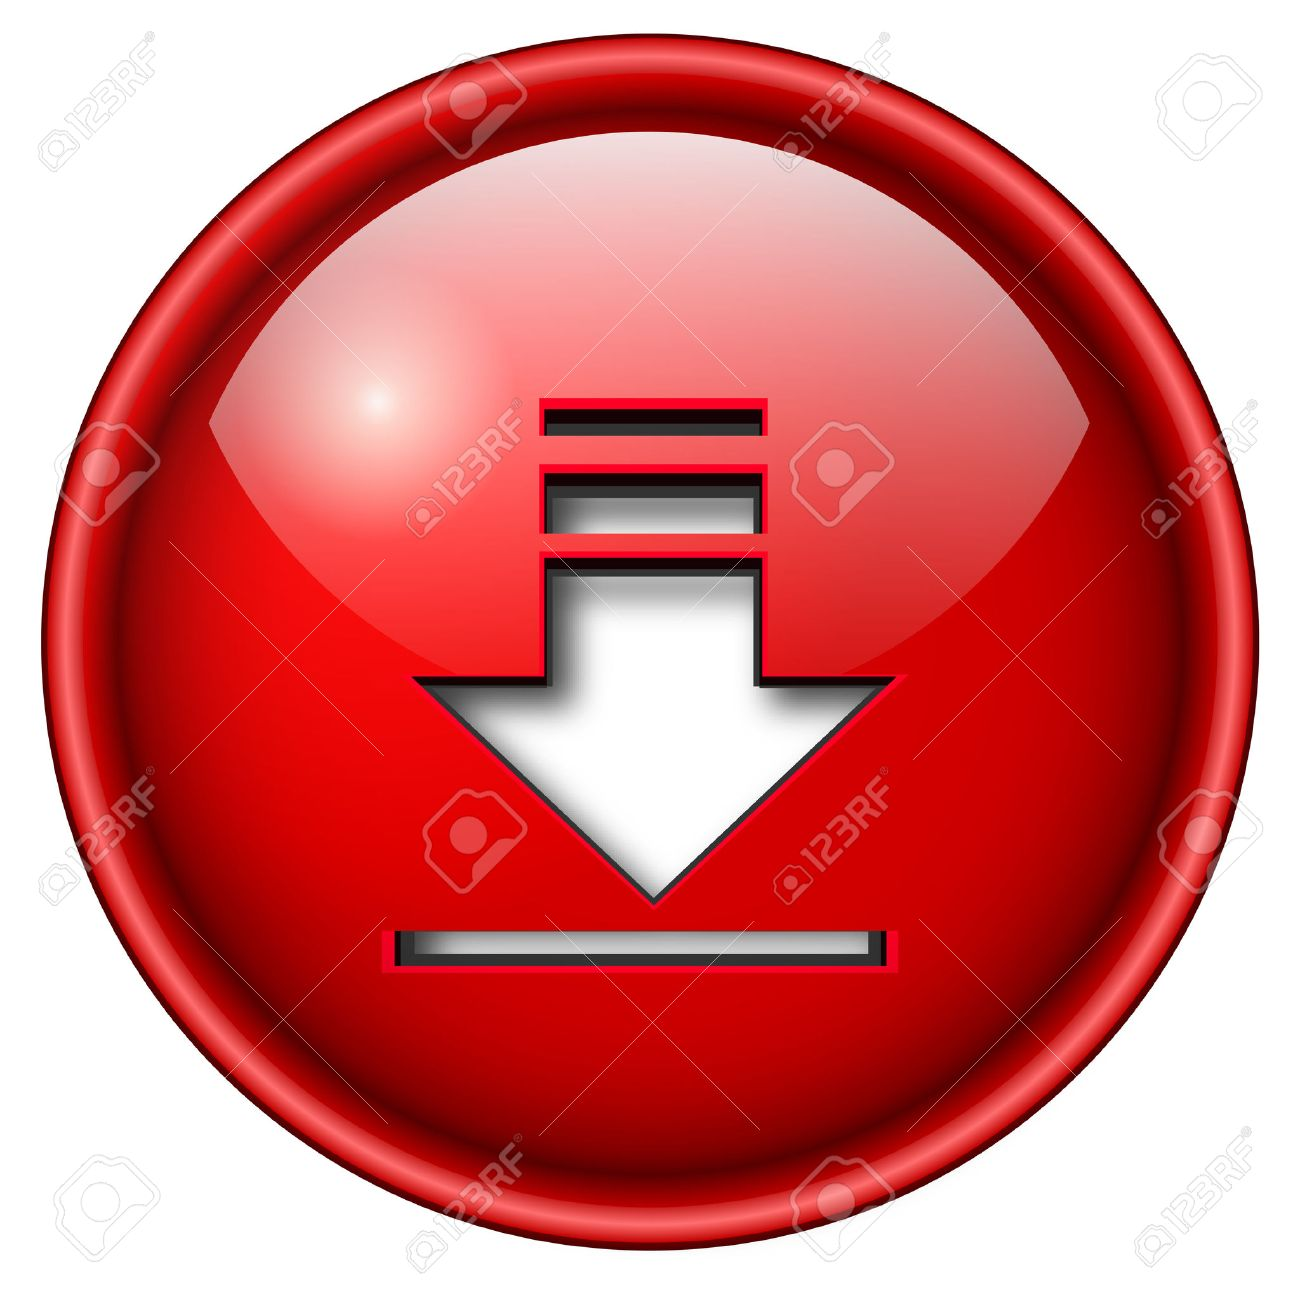 download icon, button, 3d red glossy circle. Stock Vector - 6470694